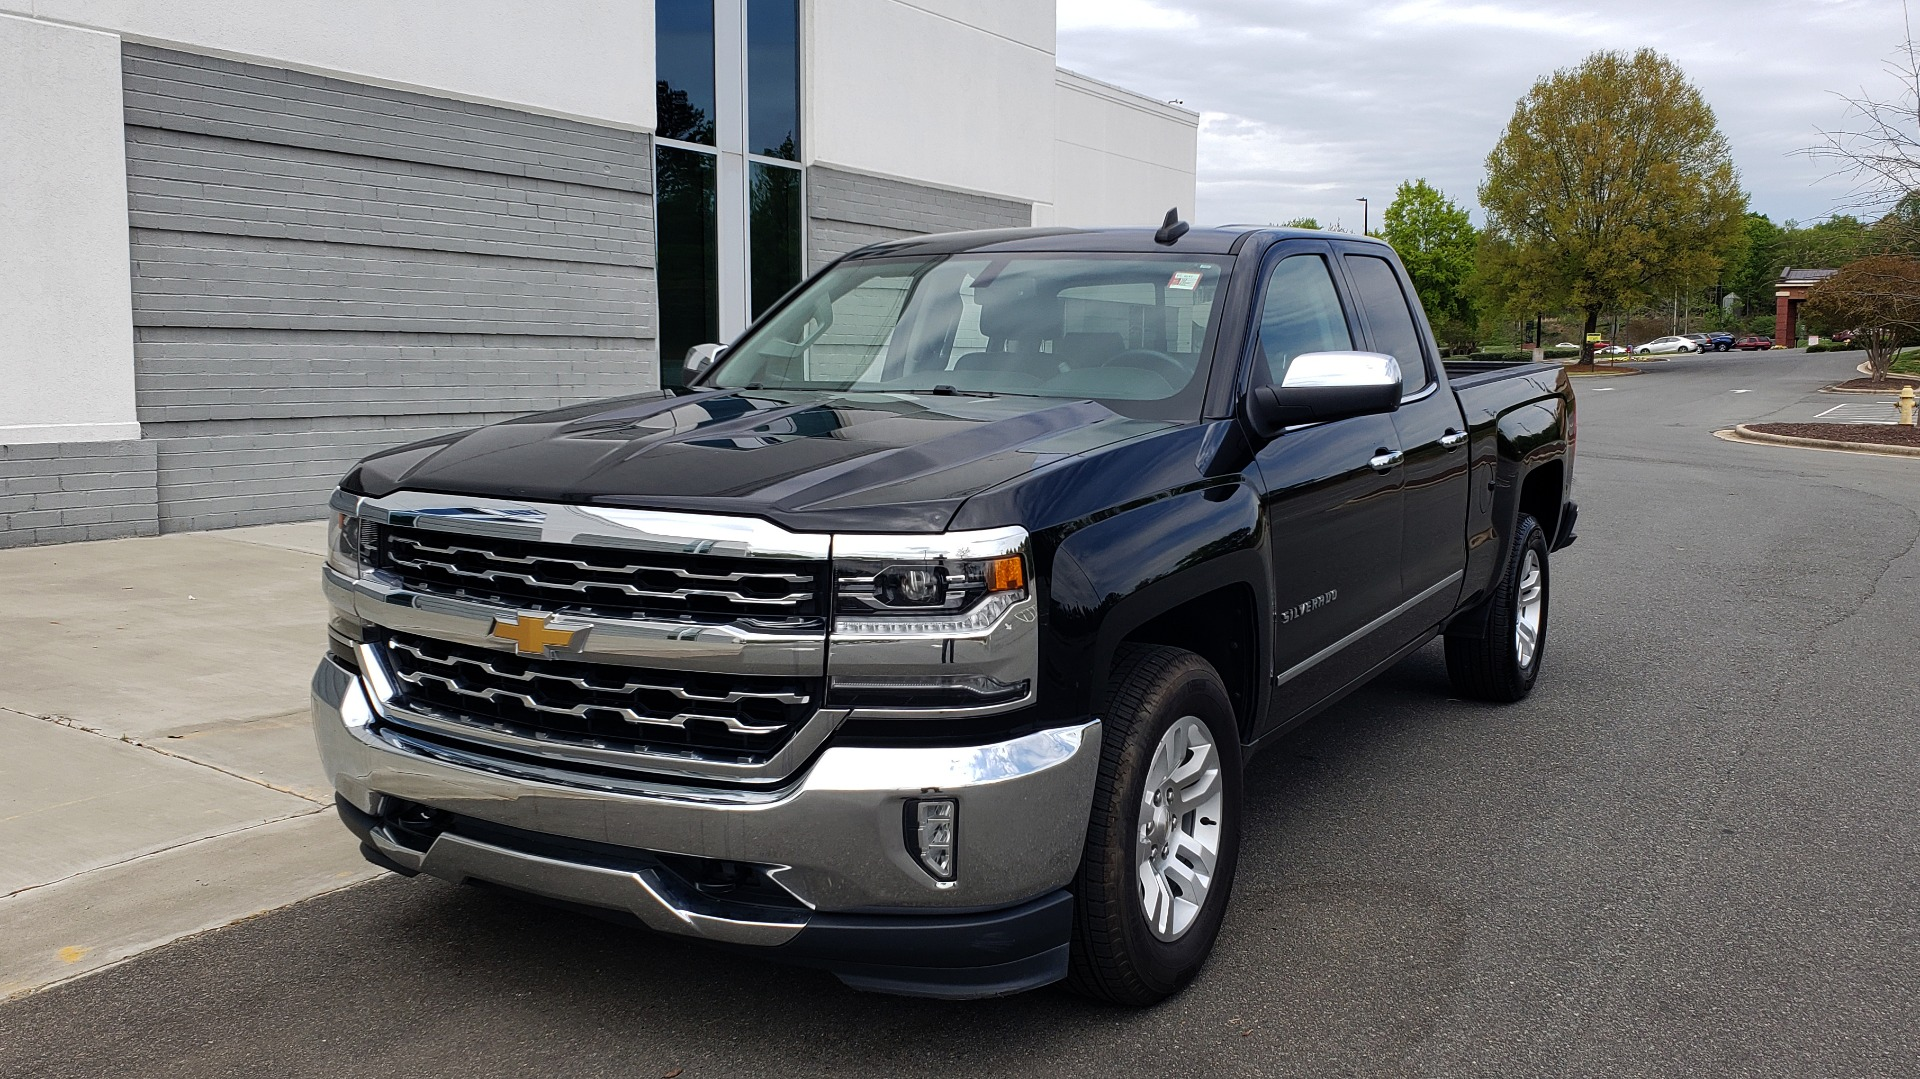 Used 2018 Chevrolet SILVERADO 1500 LTZ 1LZ / 5.3L V8 / 2WD / 6-SPD AUTO / DOUBLECAB / REARVIEW for sale Sold at Formula Imports in Charlotte NC 28227 2